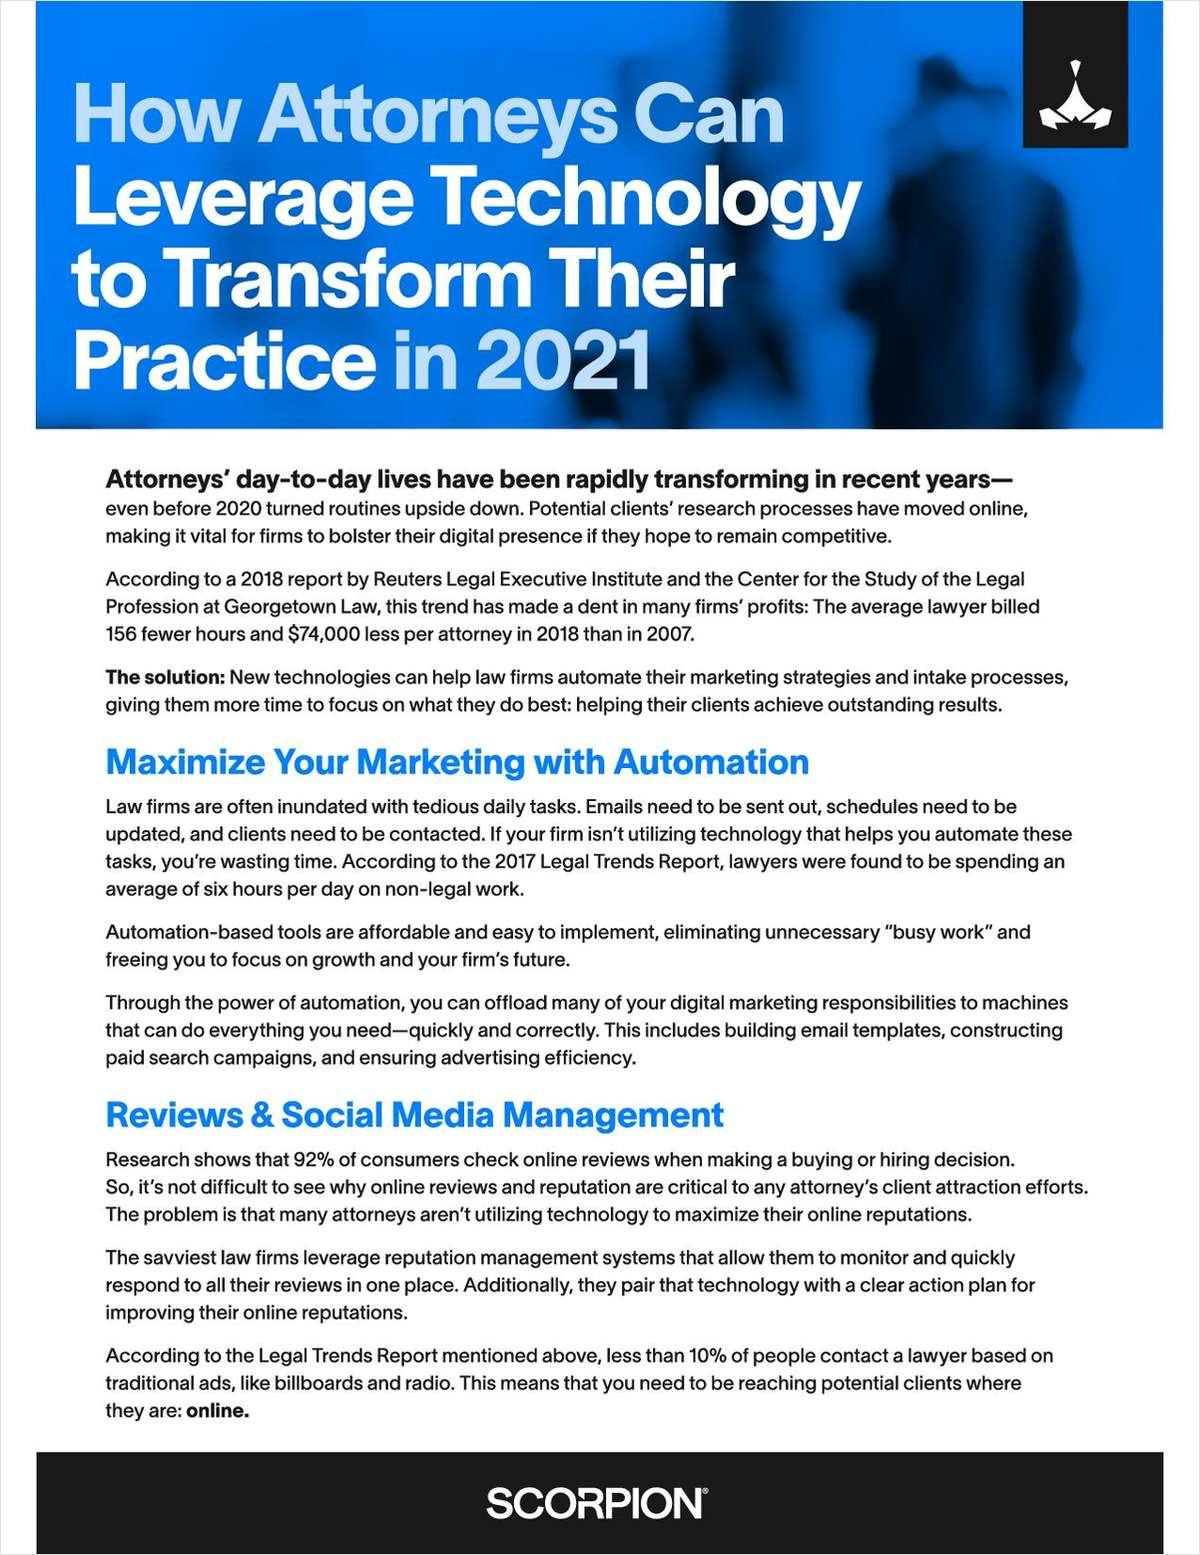 How Attorneys Can Leverage Technology to Transform Their Practice in 2021